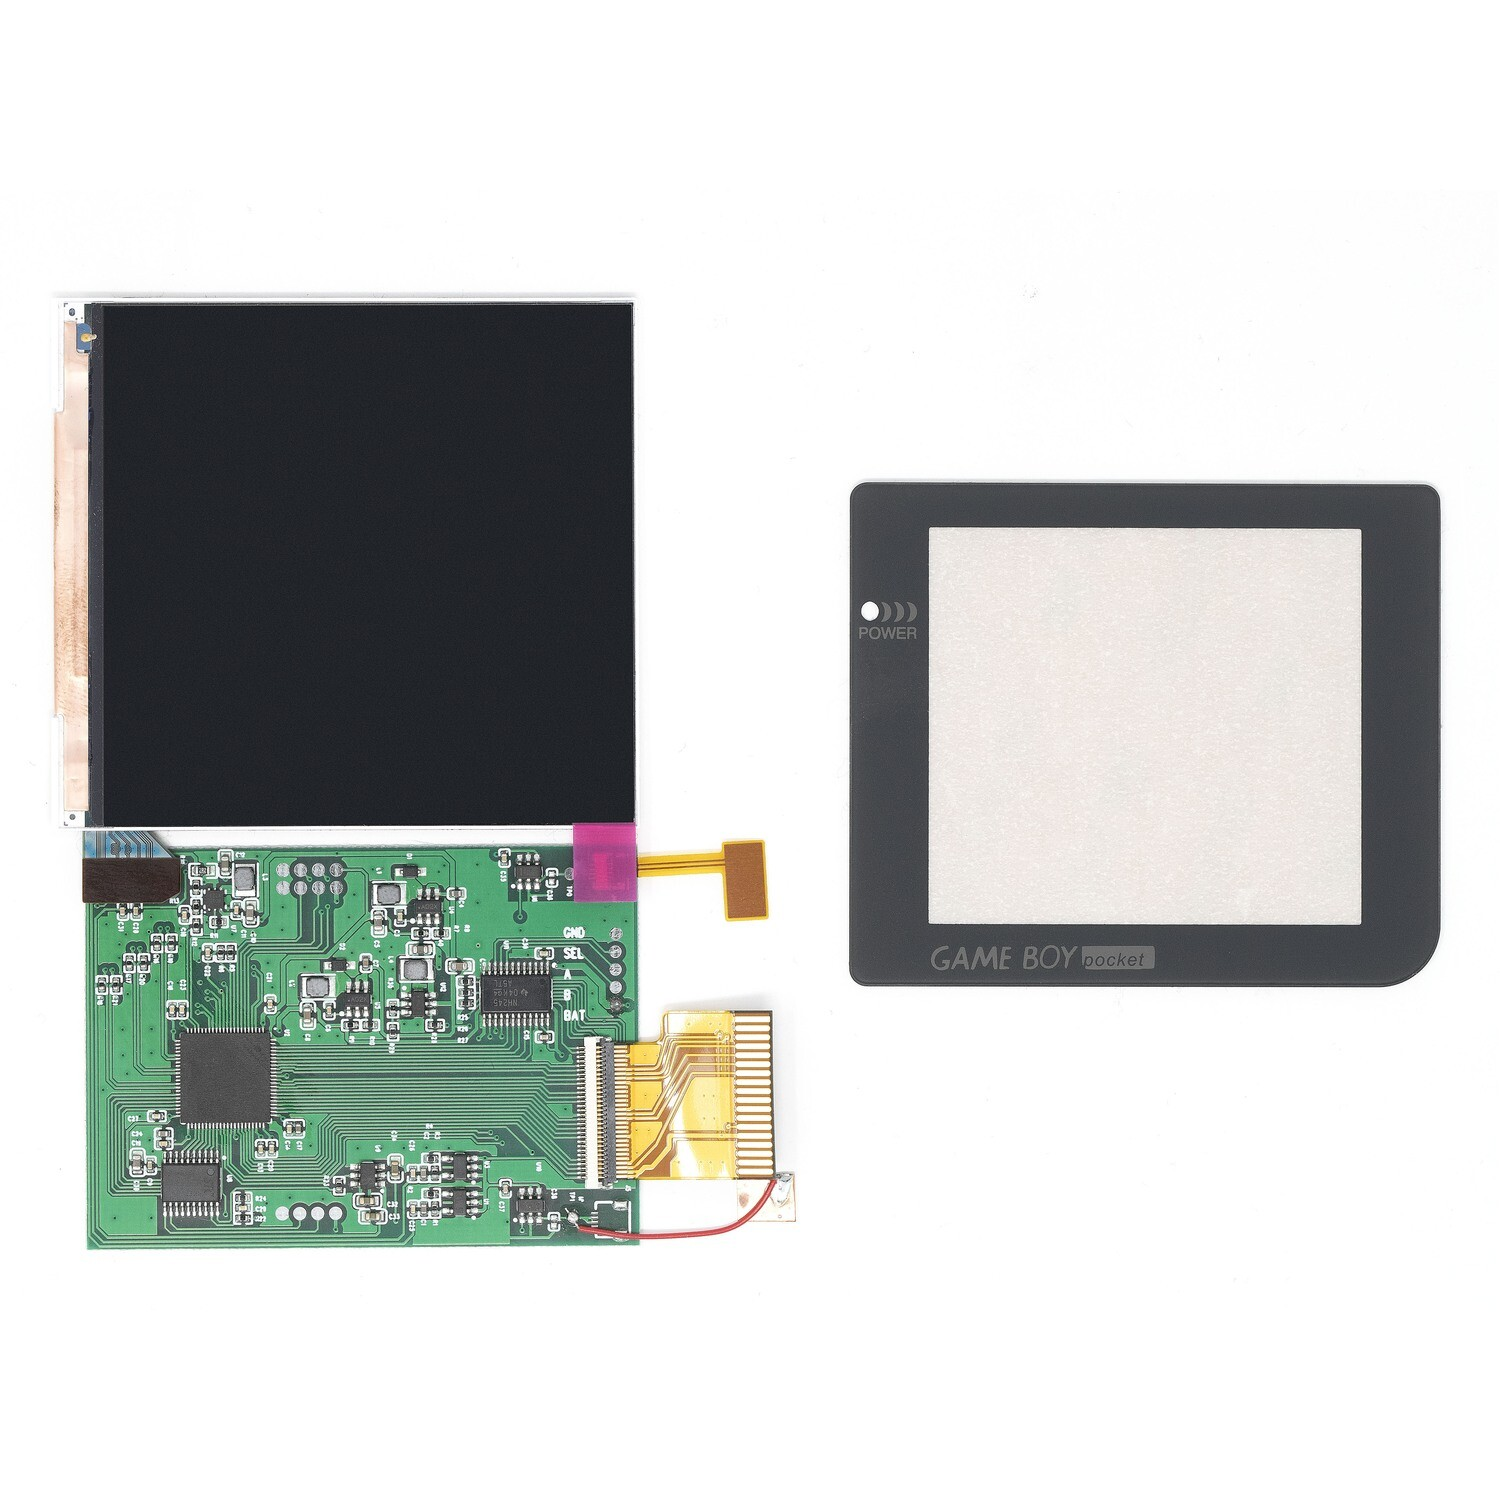 Game Boy Pocket IPS OSD Screen Kit